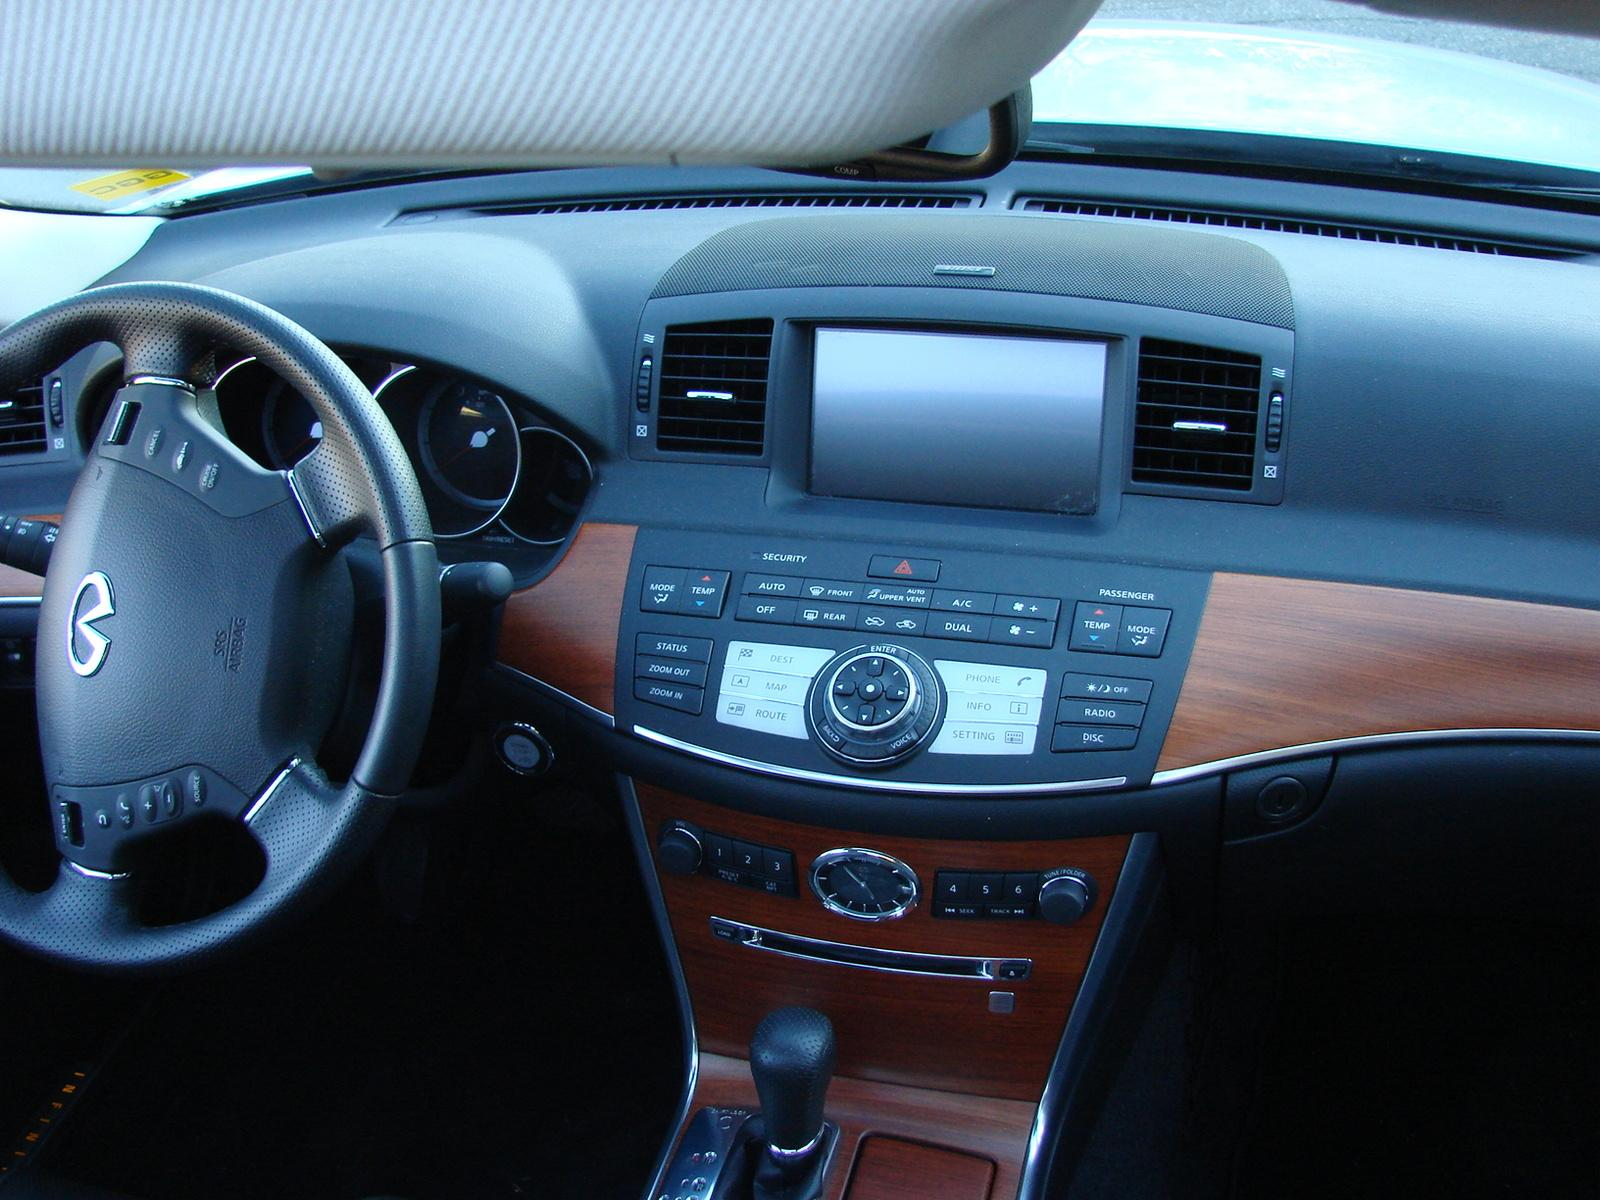 2007 infiniti m35 blue images hd cars wallpaper 2006 infiniti m35 information and photos zombiedrive 800 1024 1280 1600 origin 2006 infiniti m35 vanachro vanachro Choice Image